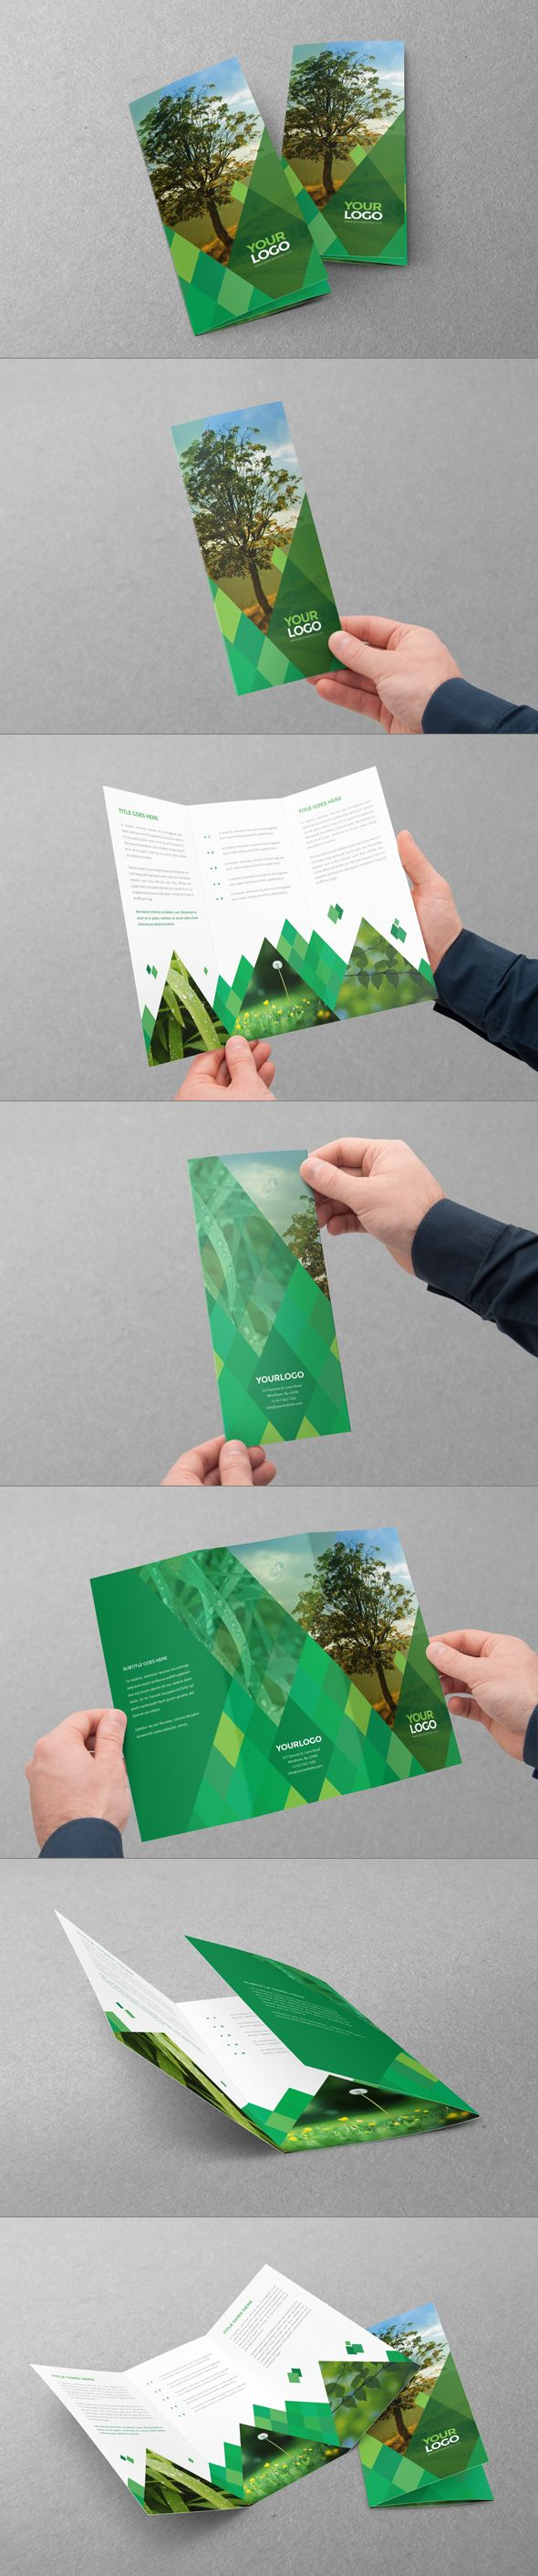 Green Diamonds Trifold by Abra Design, via Behance